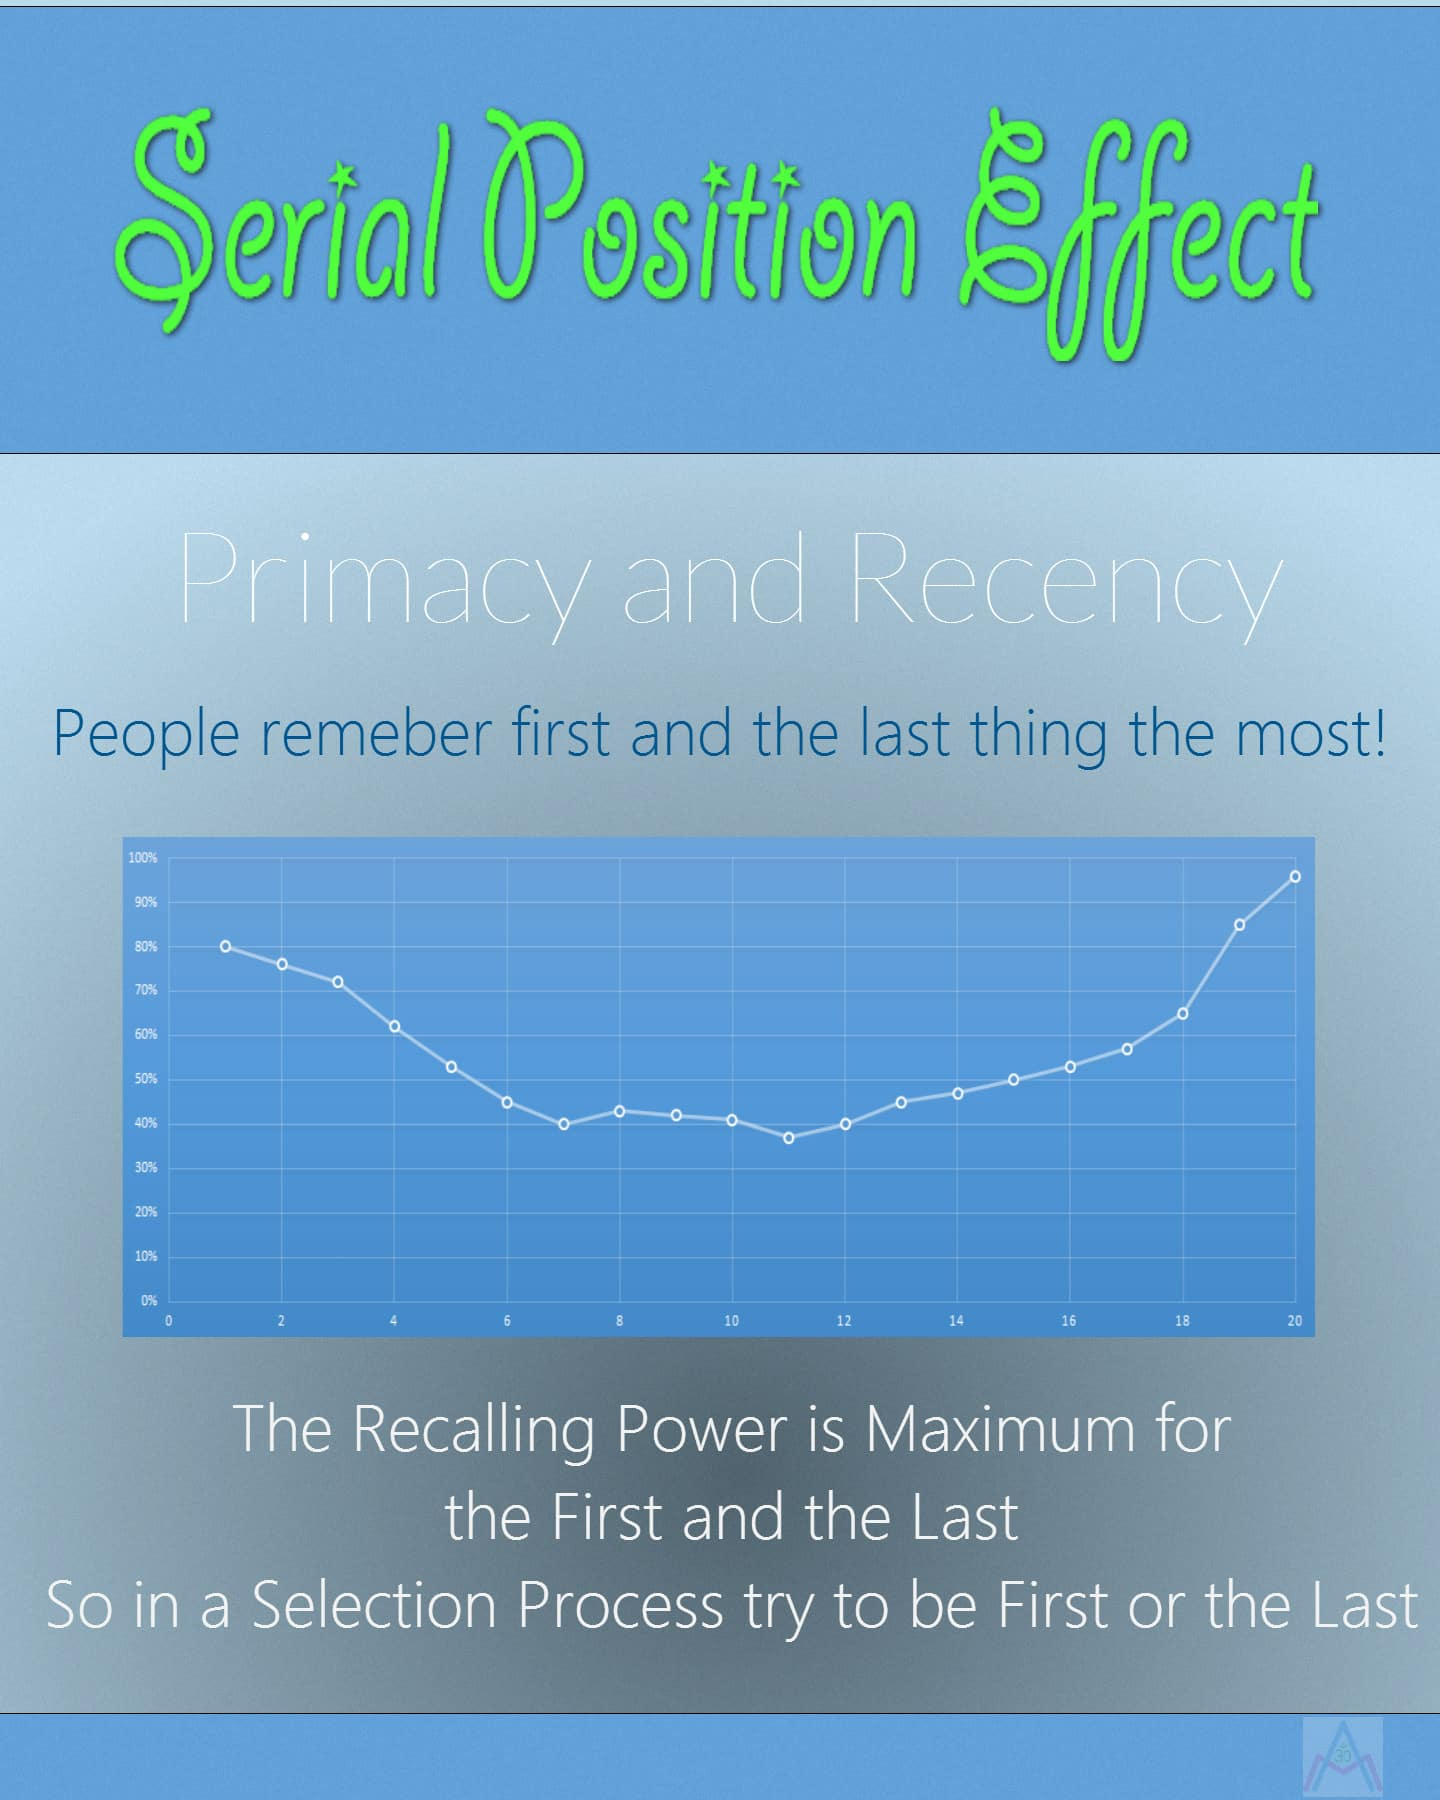 Serial Position Effect Infographic